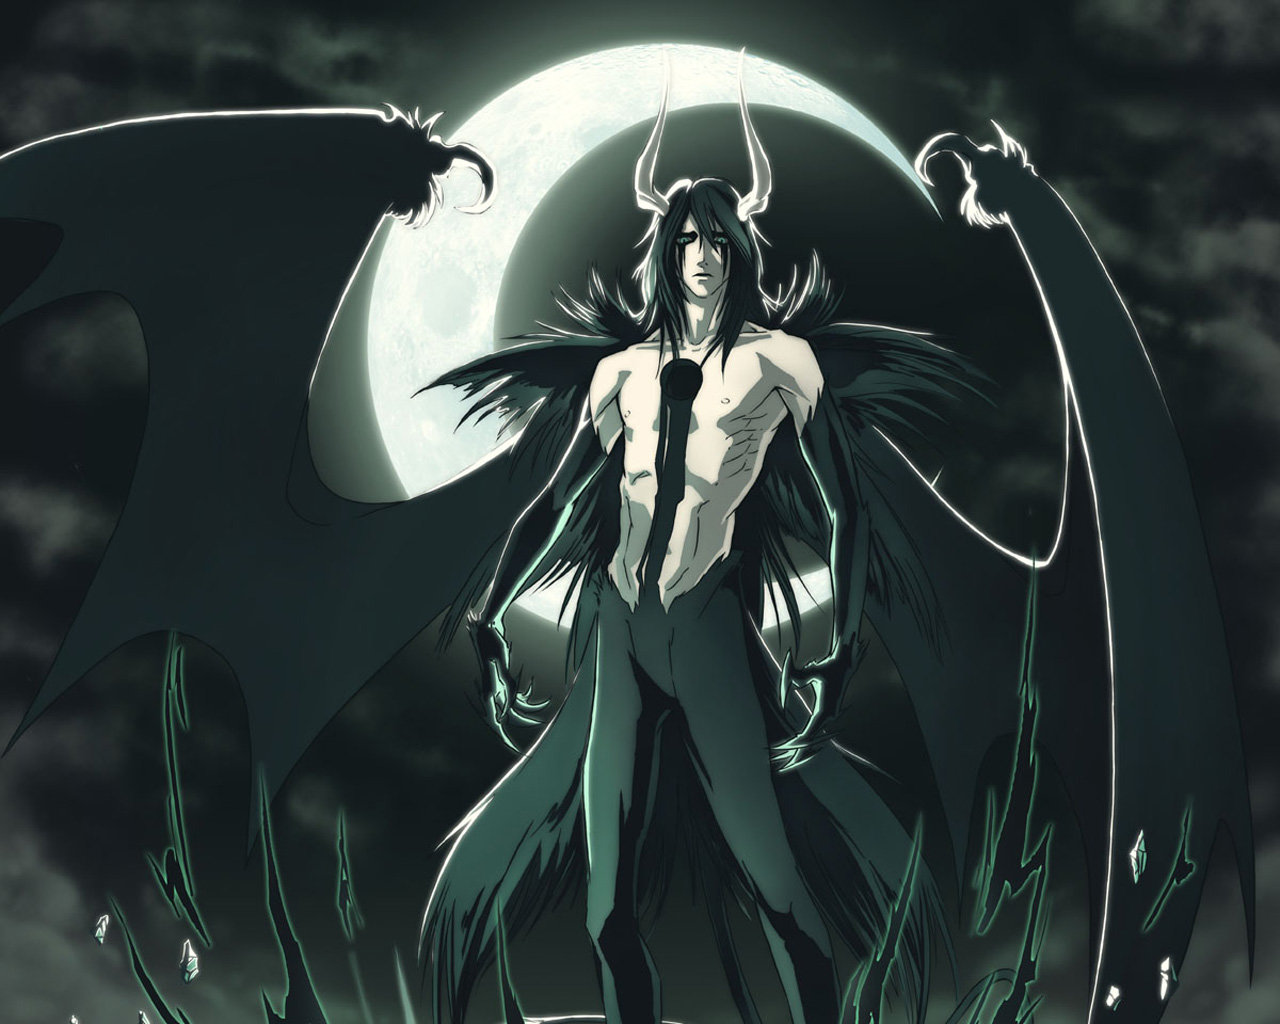 Free Ulquiorra Cifer high quality wallpaper ID:417893 for hd 1280x1024 computer